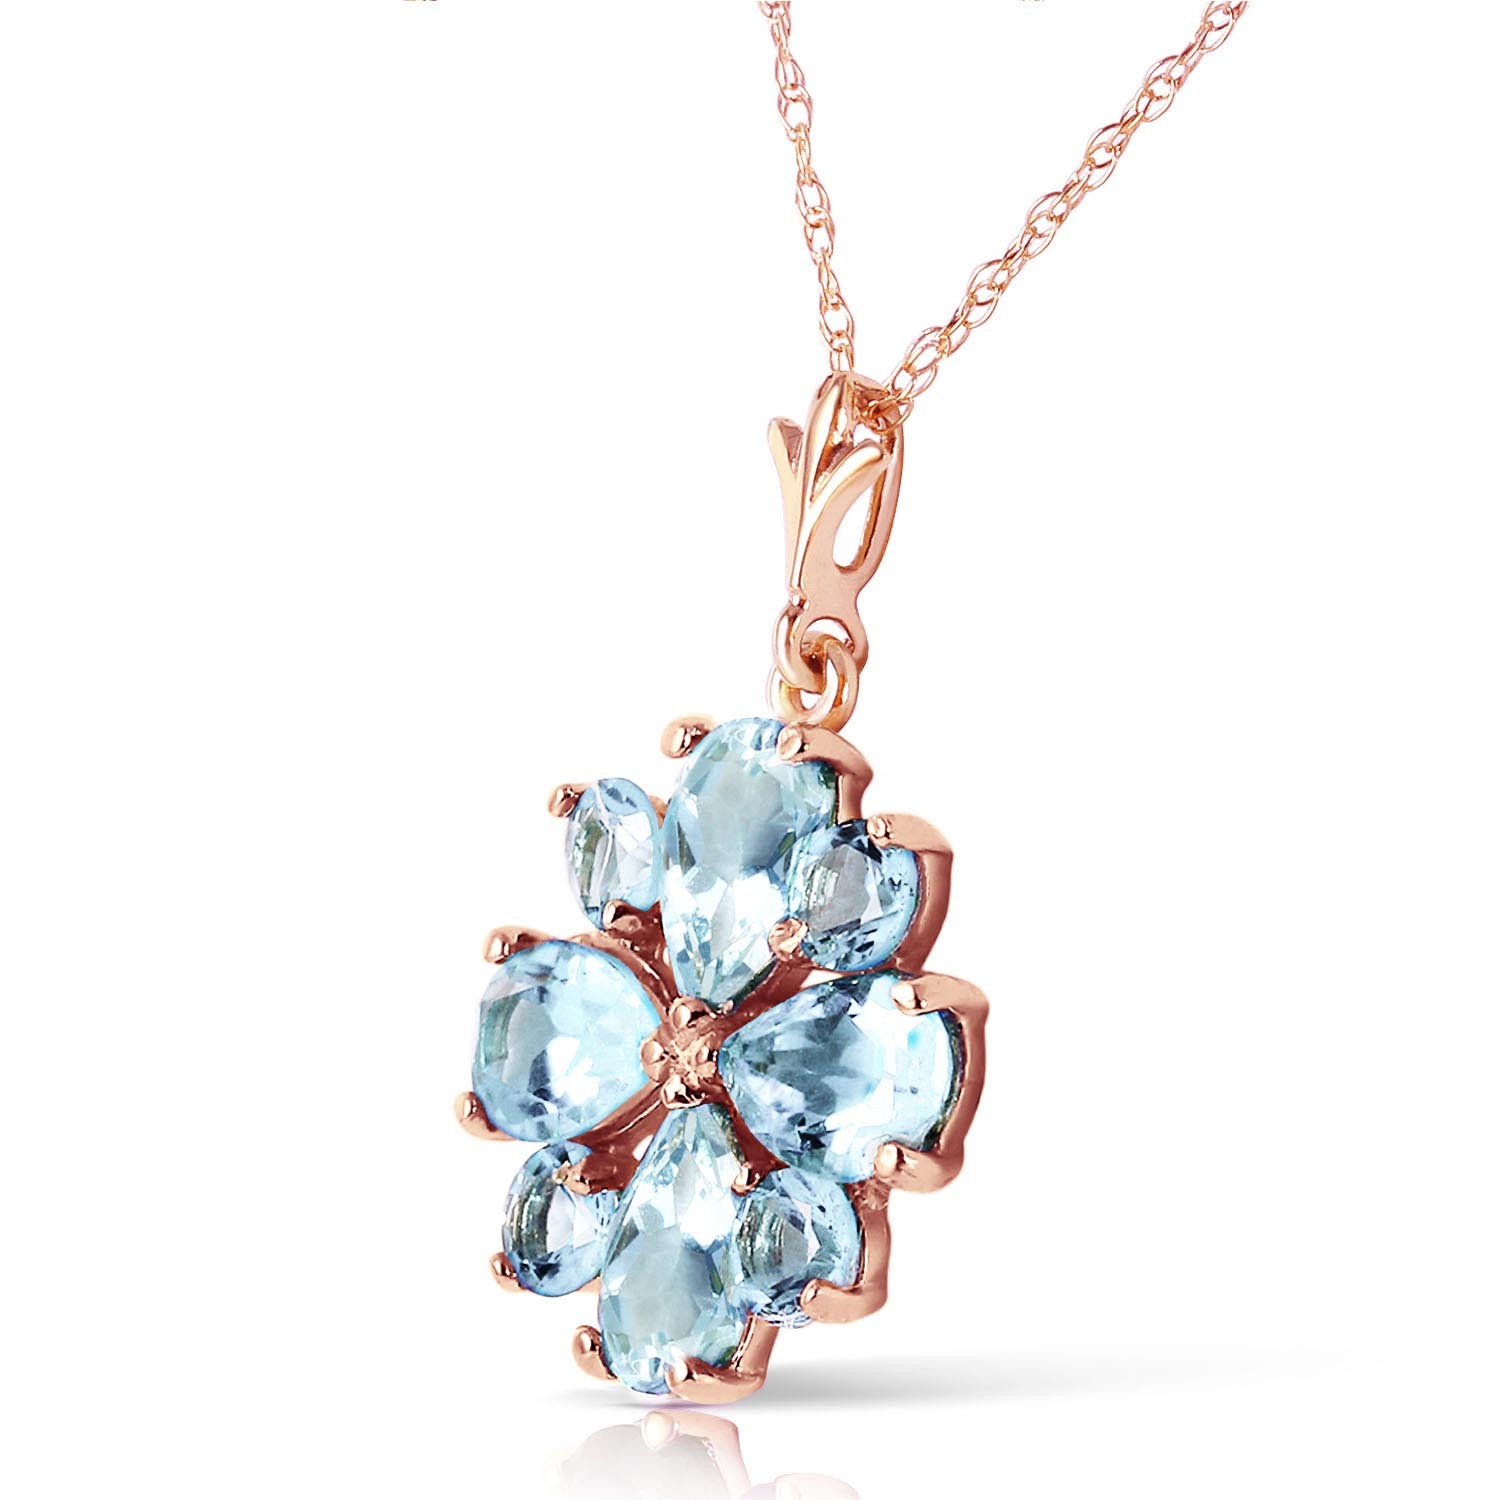 Aquamarine Sunflower Pendant Necklace 2.43ctw in 14K Rose Gold